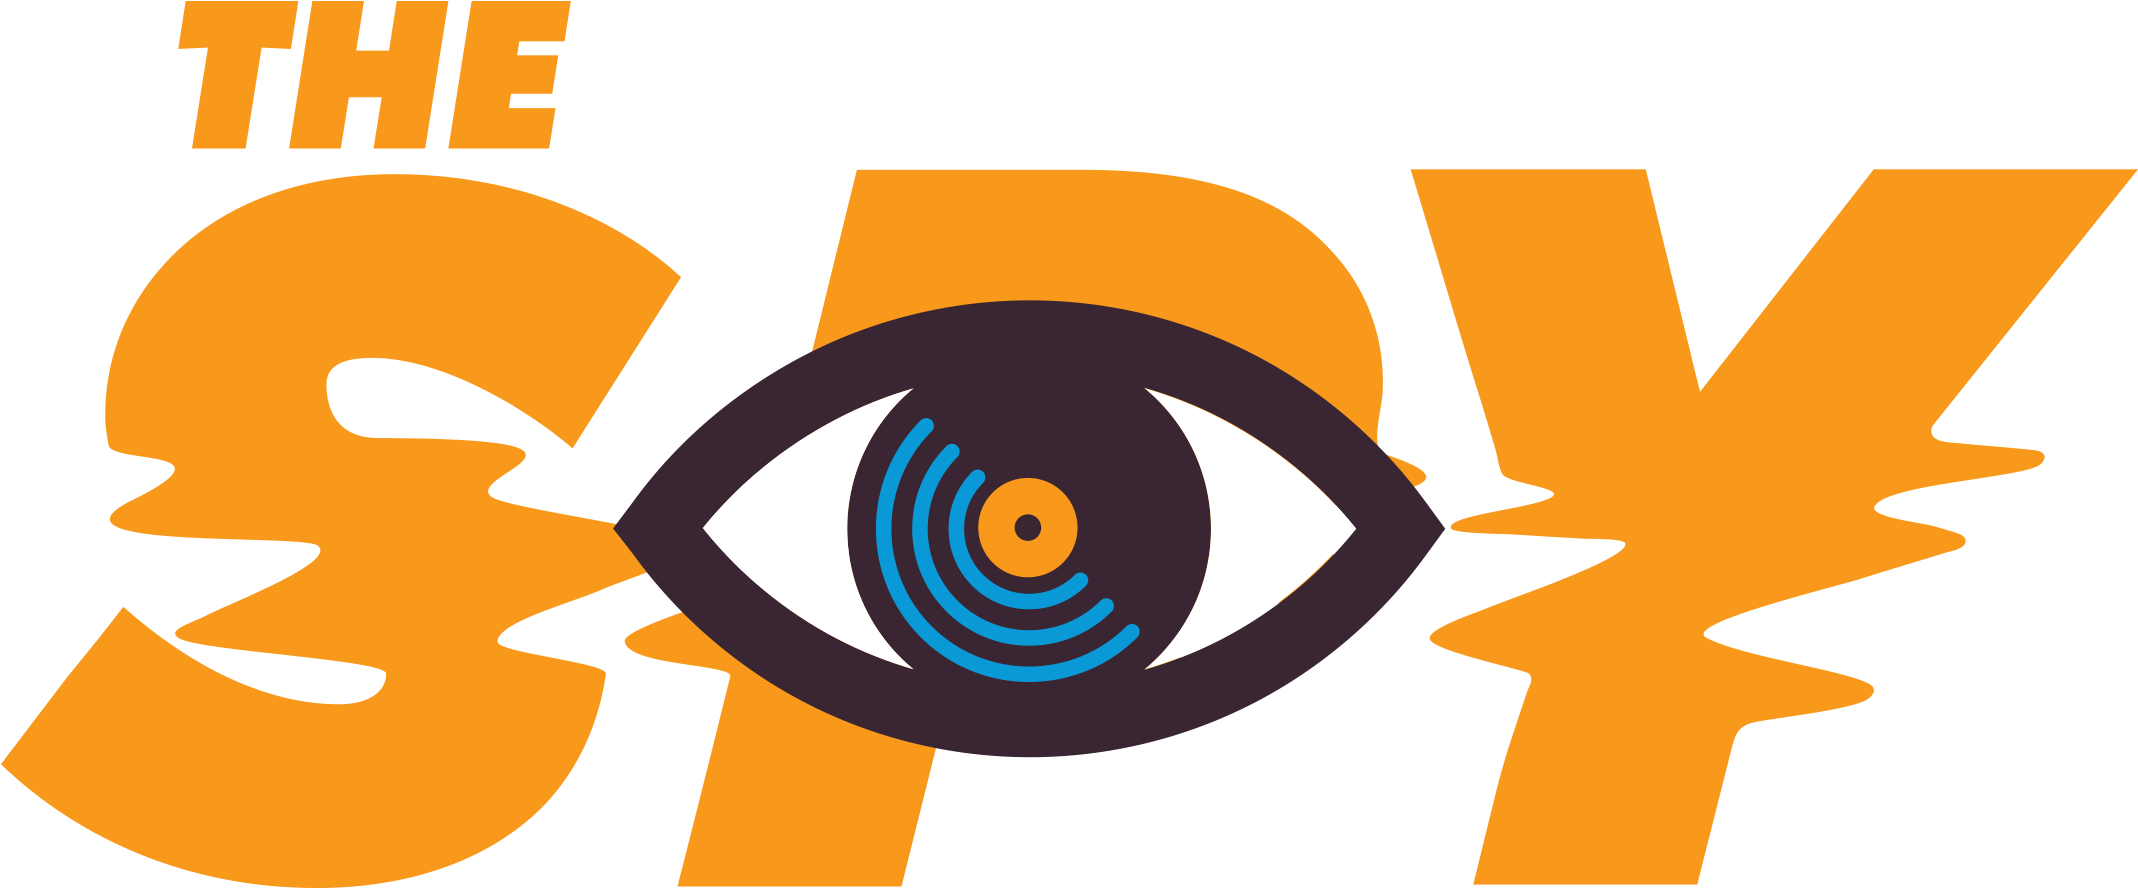 download the spy fm logo spy logo png image with no background pngkey com download the spy fm logo spy logo png